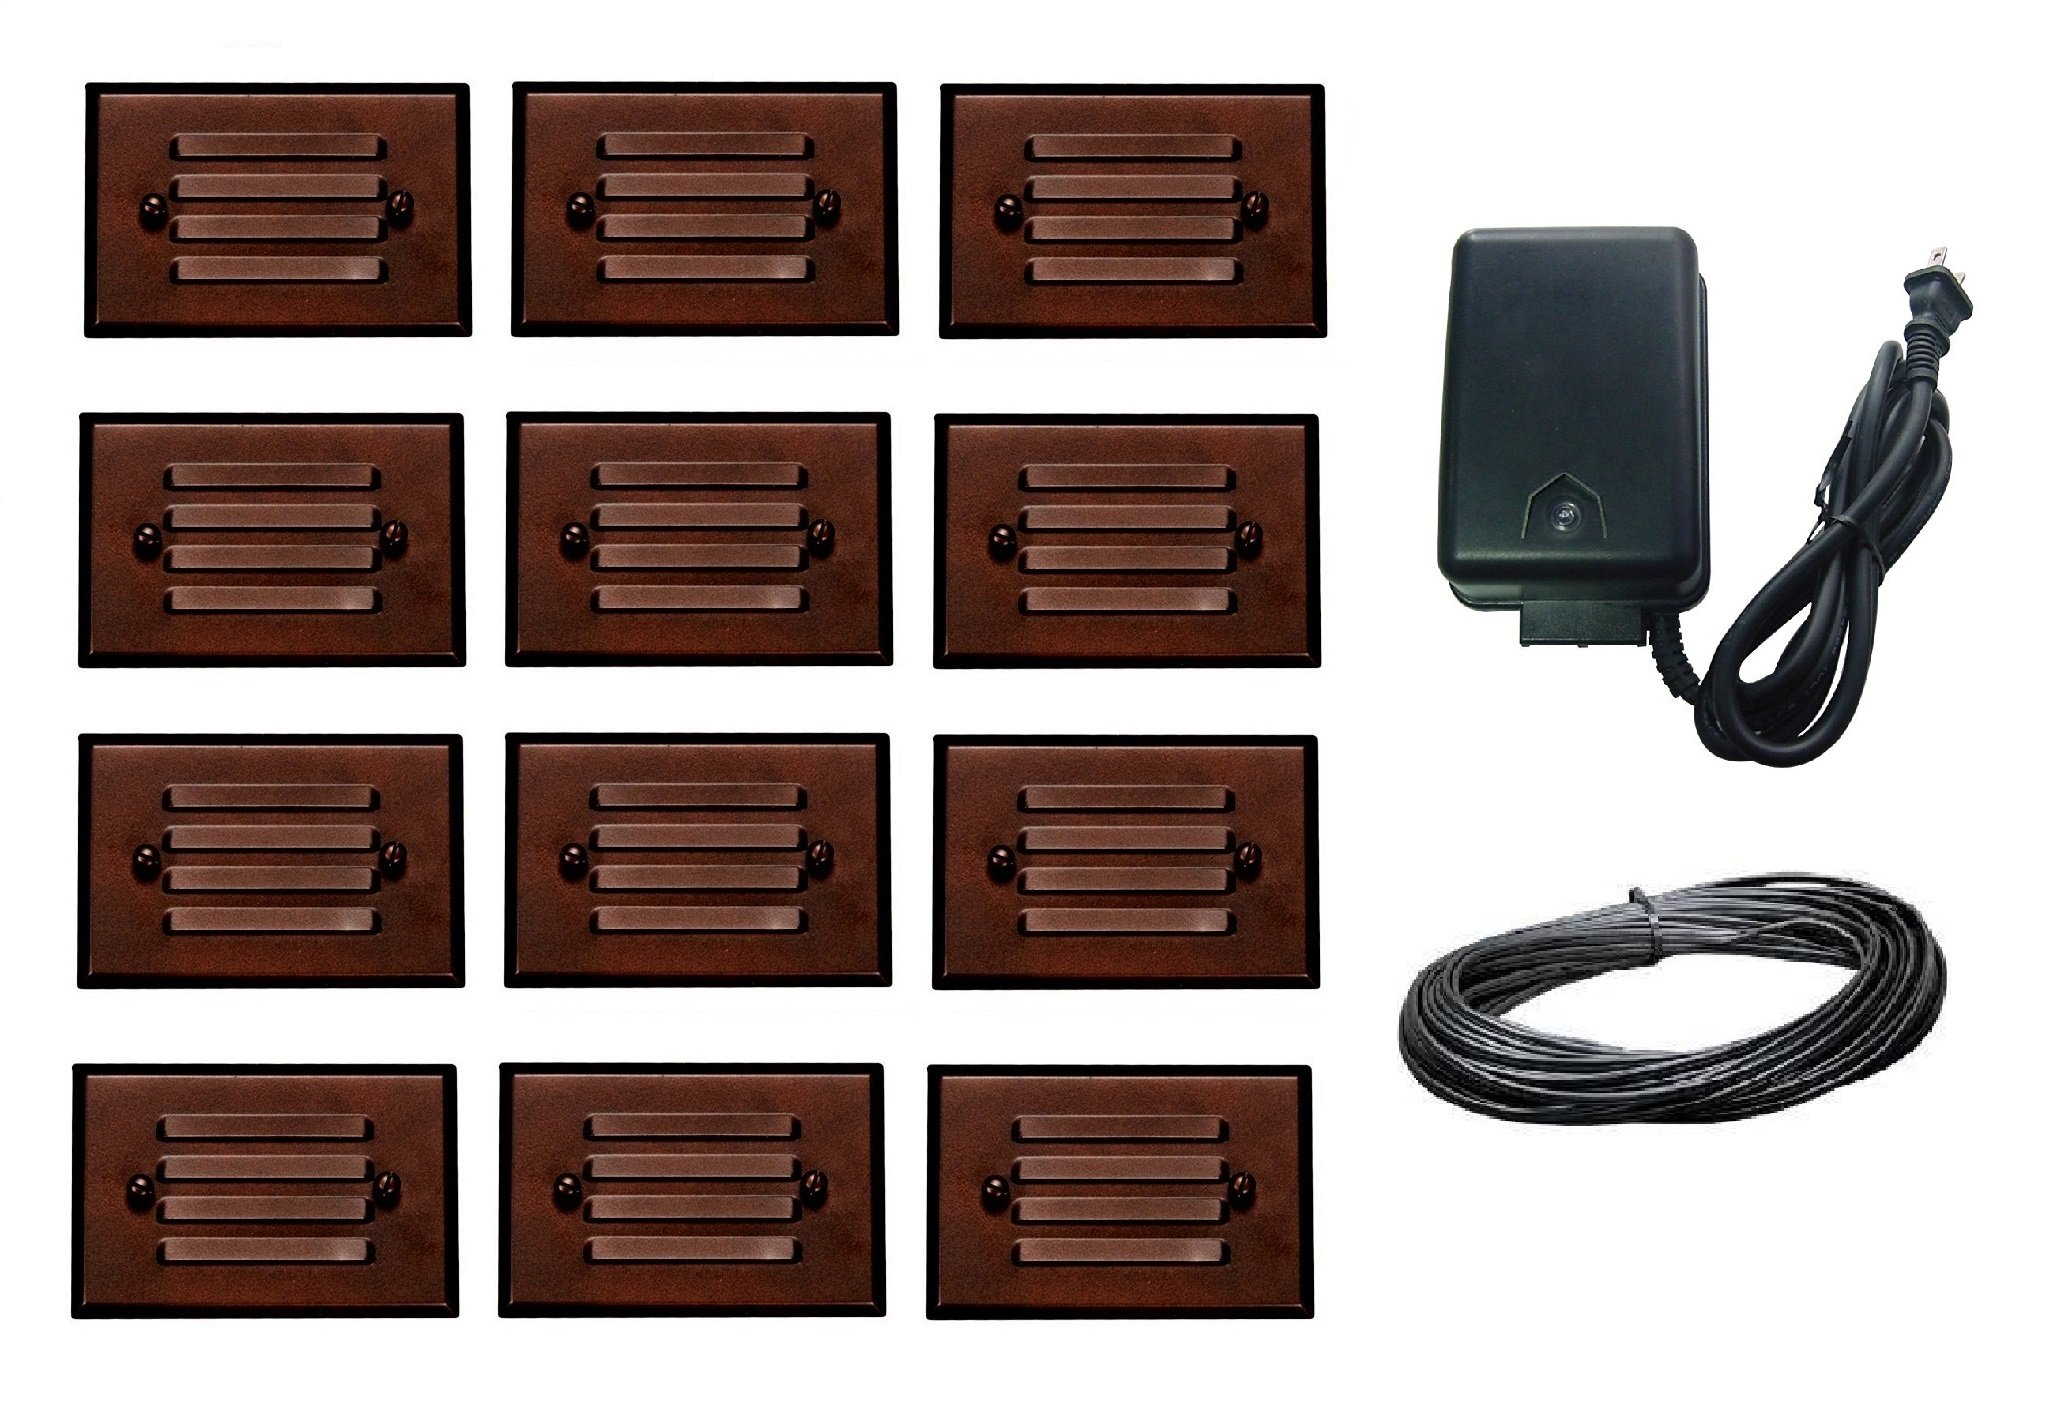 14 Piece Malibu Lighting Kit LED Half Brick Outdoor Deck Step Light Oil Rubbed Bronze Finish + 45 watt Transformer + 100 ft landscape wire. BY MALIBU DISTRIBUTION by Malibu C